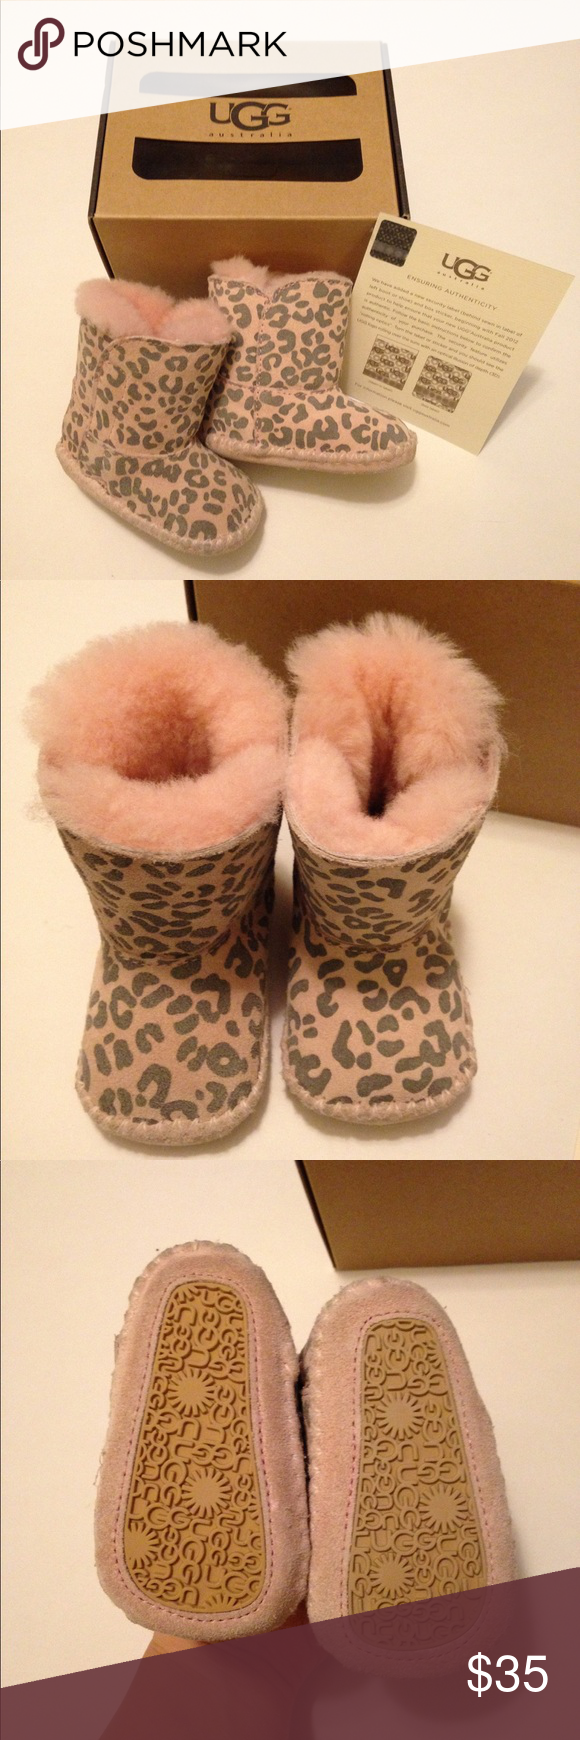 51579368212 Infant UGG Booties Infant Cassie Leopard pink UGG boots, size 0/1 XS ...